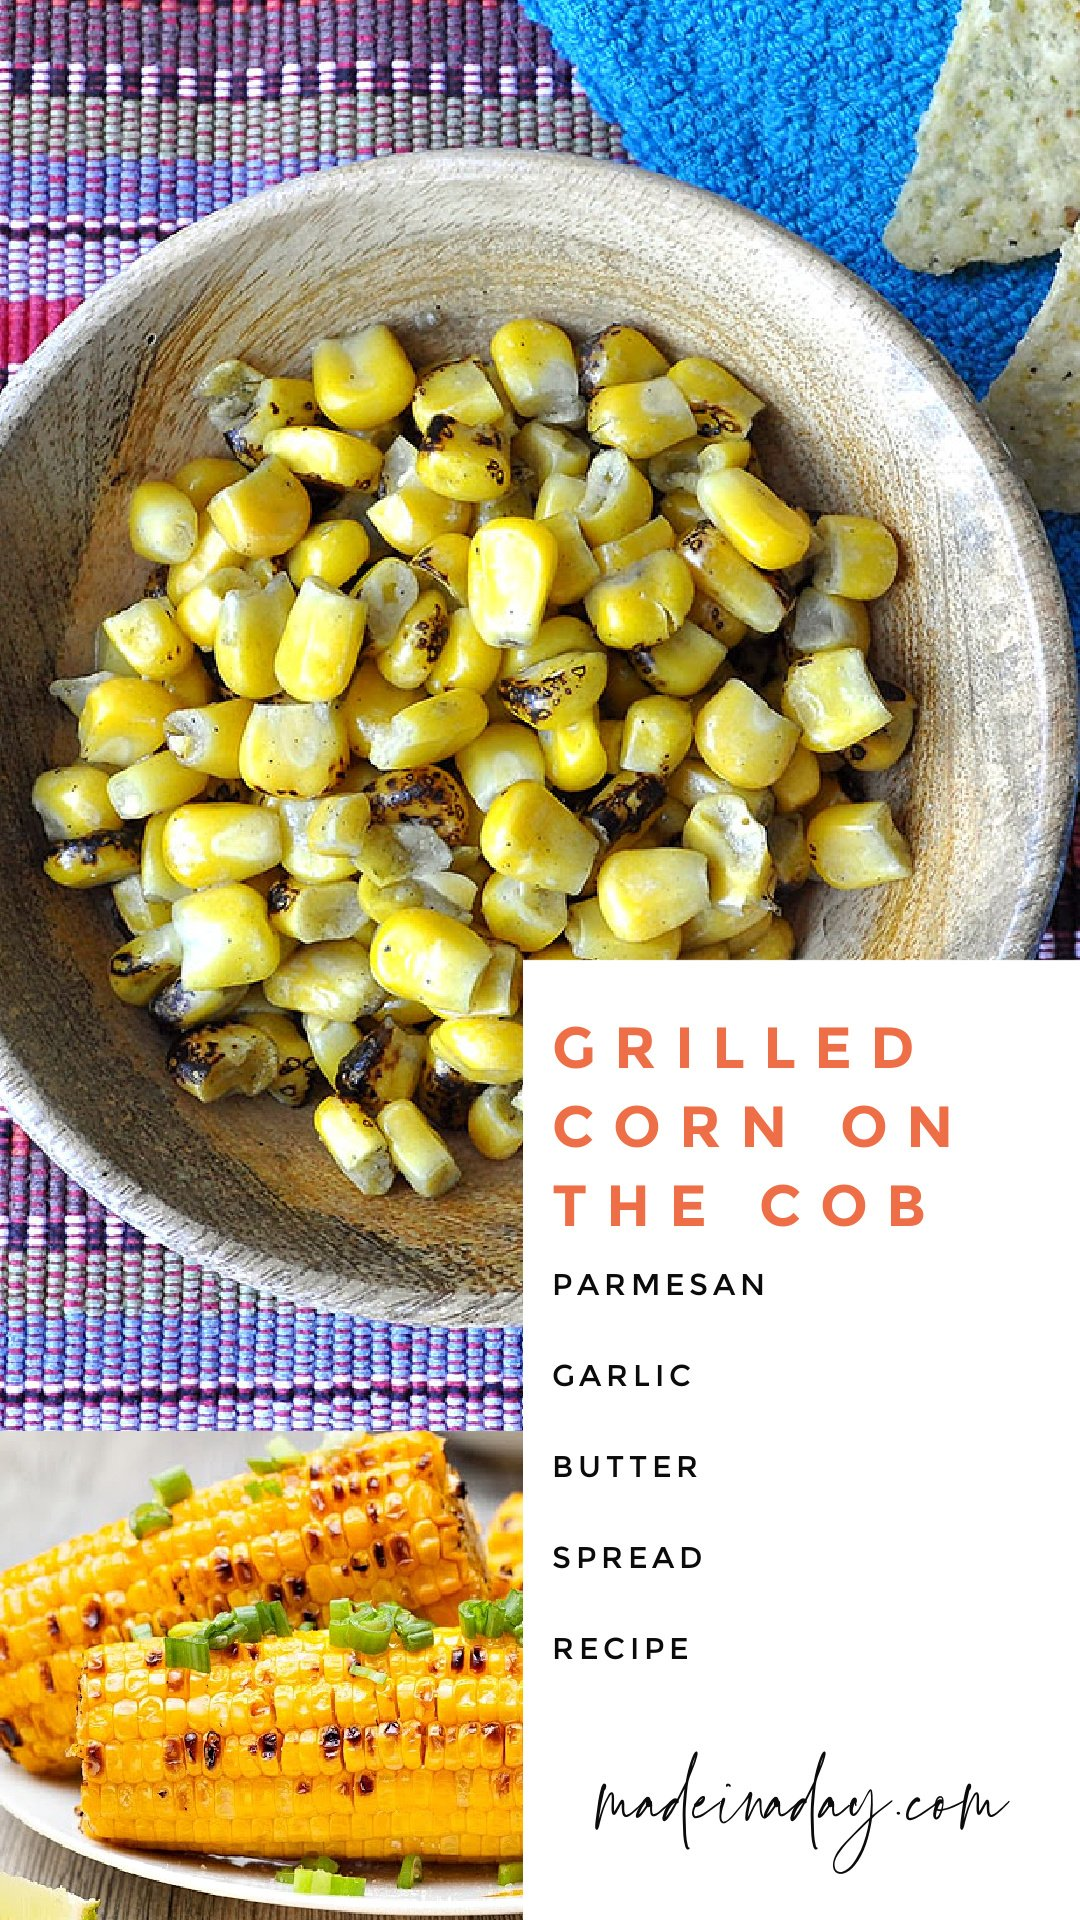 Grilled Corn on the Cob Parmesan and Garlic